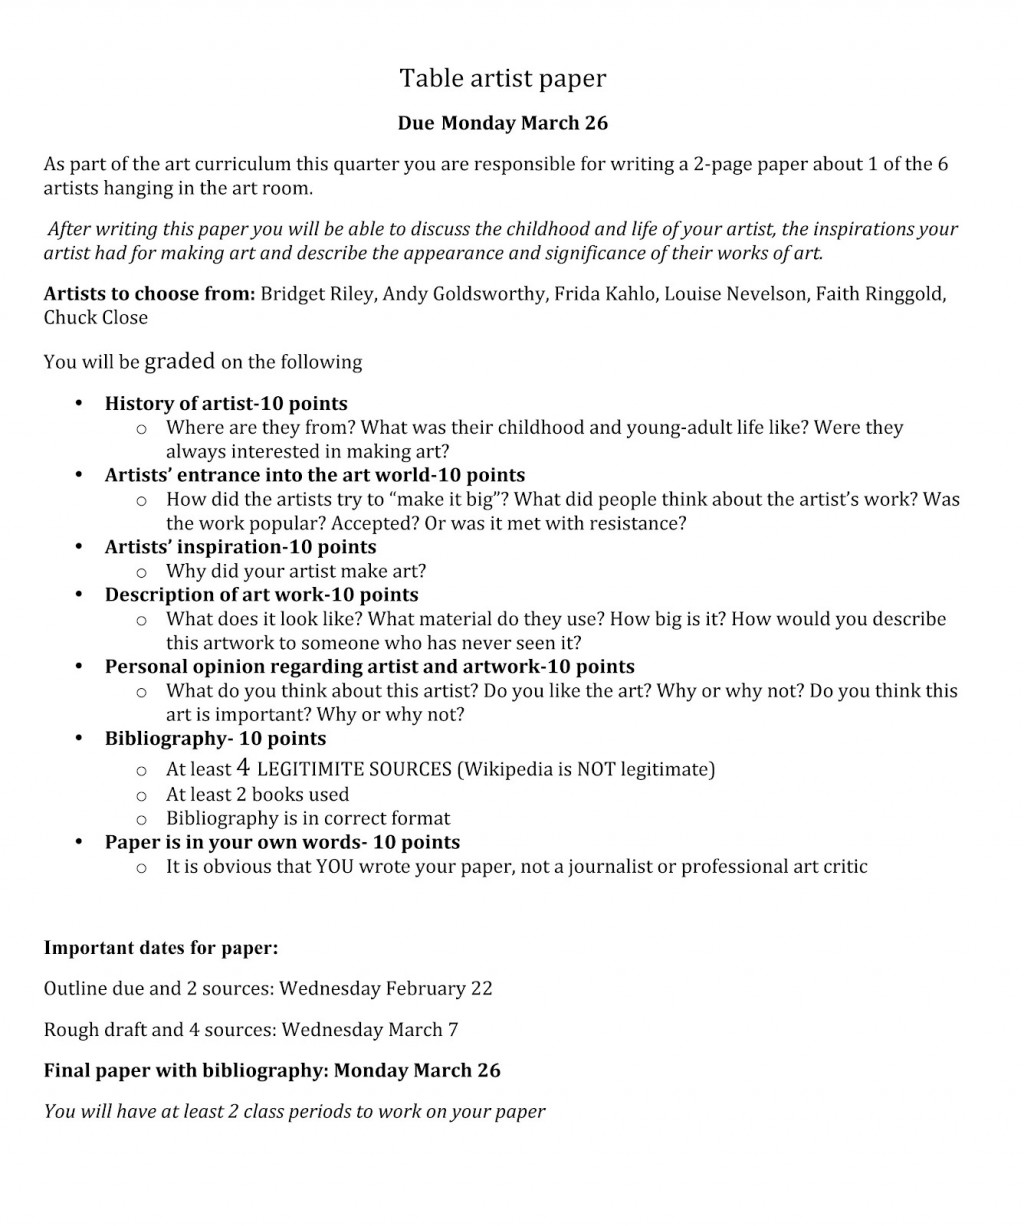 013 Tableartistpaper Middle School Research Paper Phenomenal Questions Science Topics Civil War Topic Large